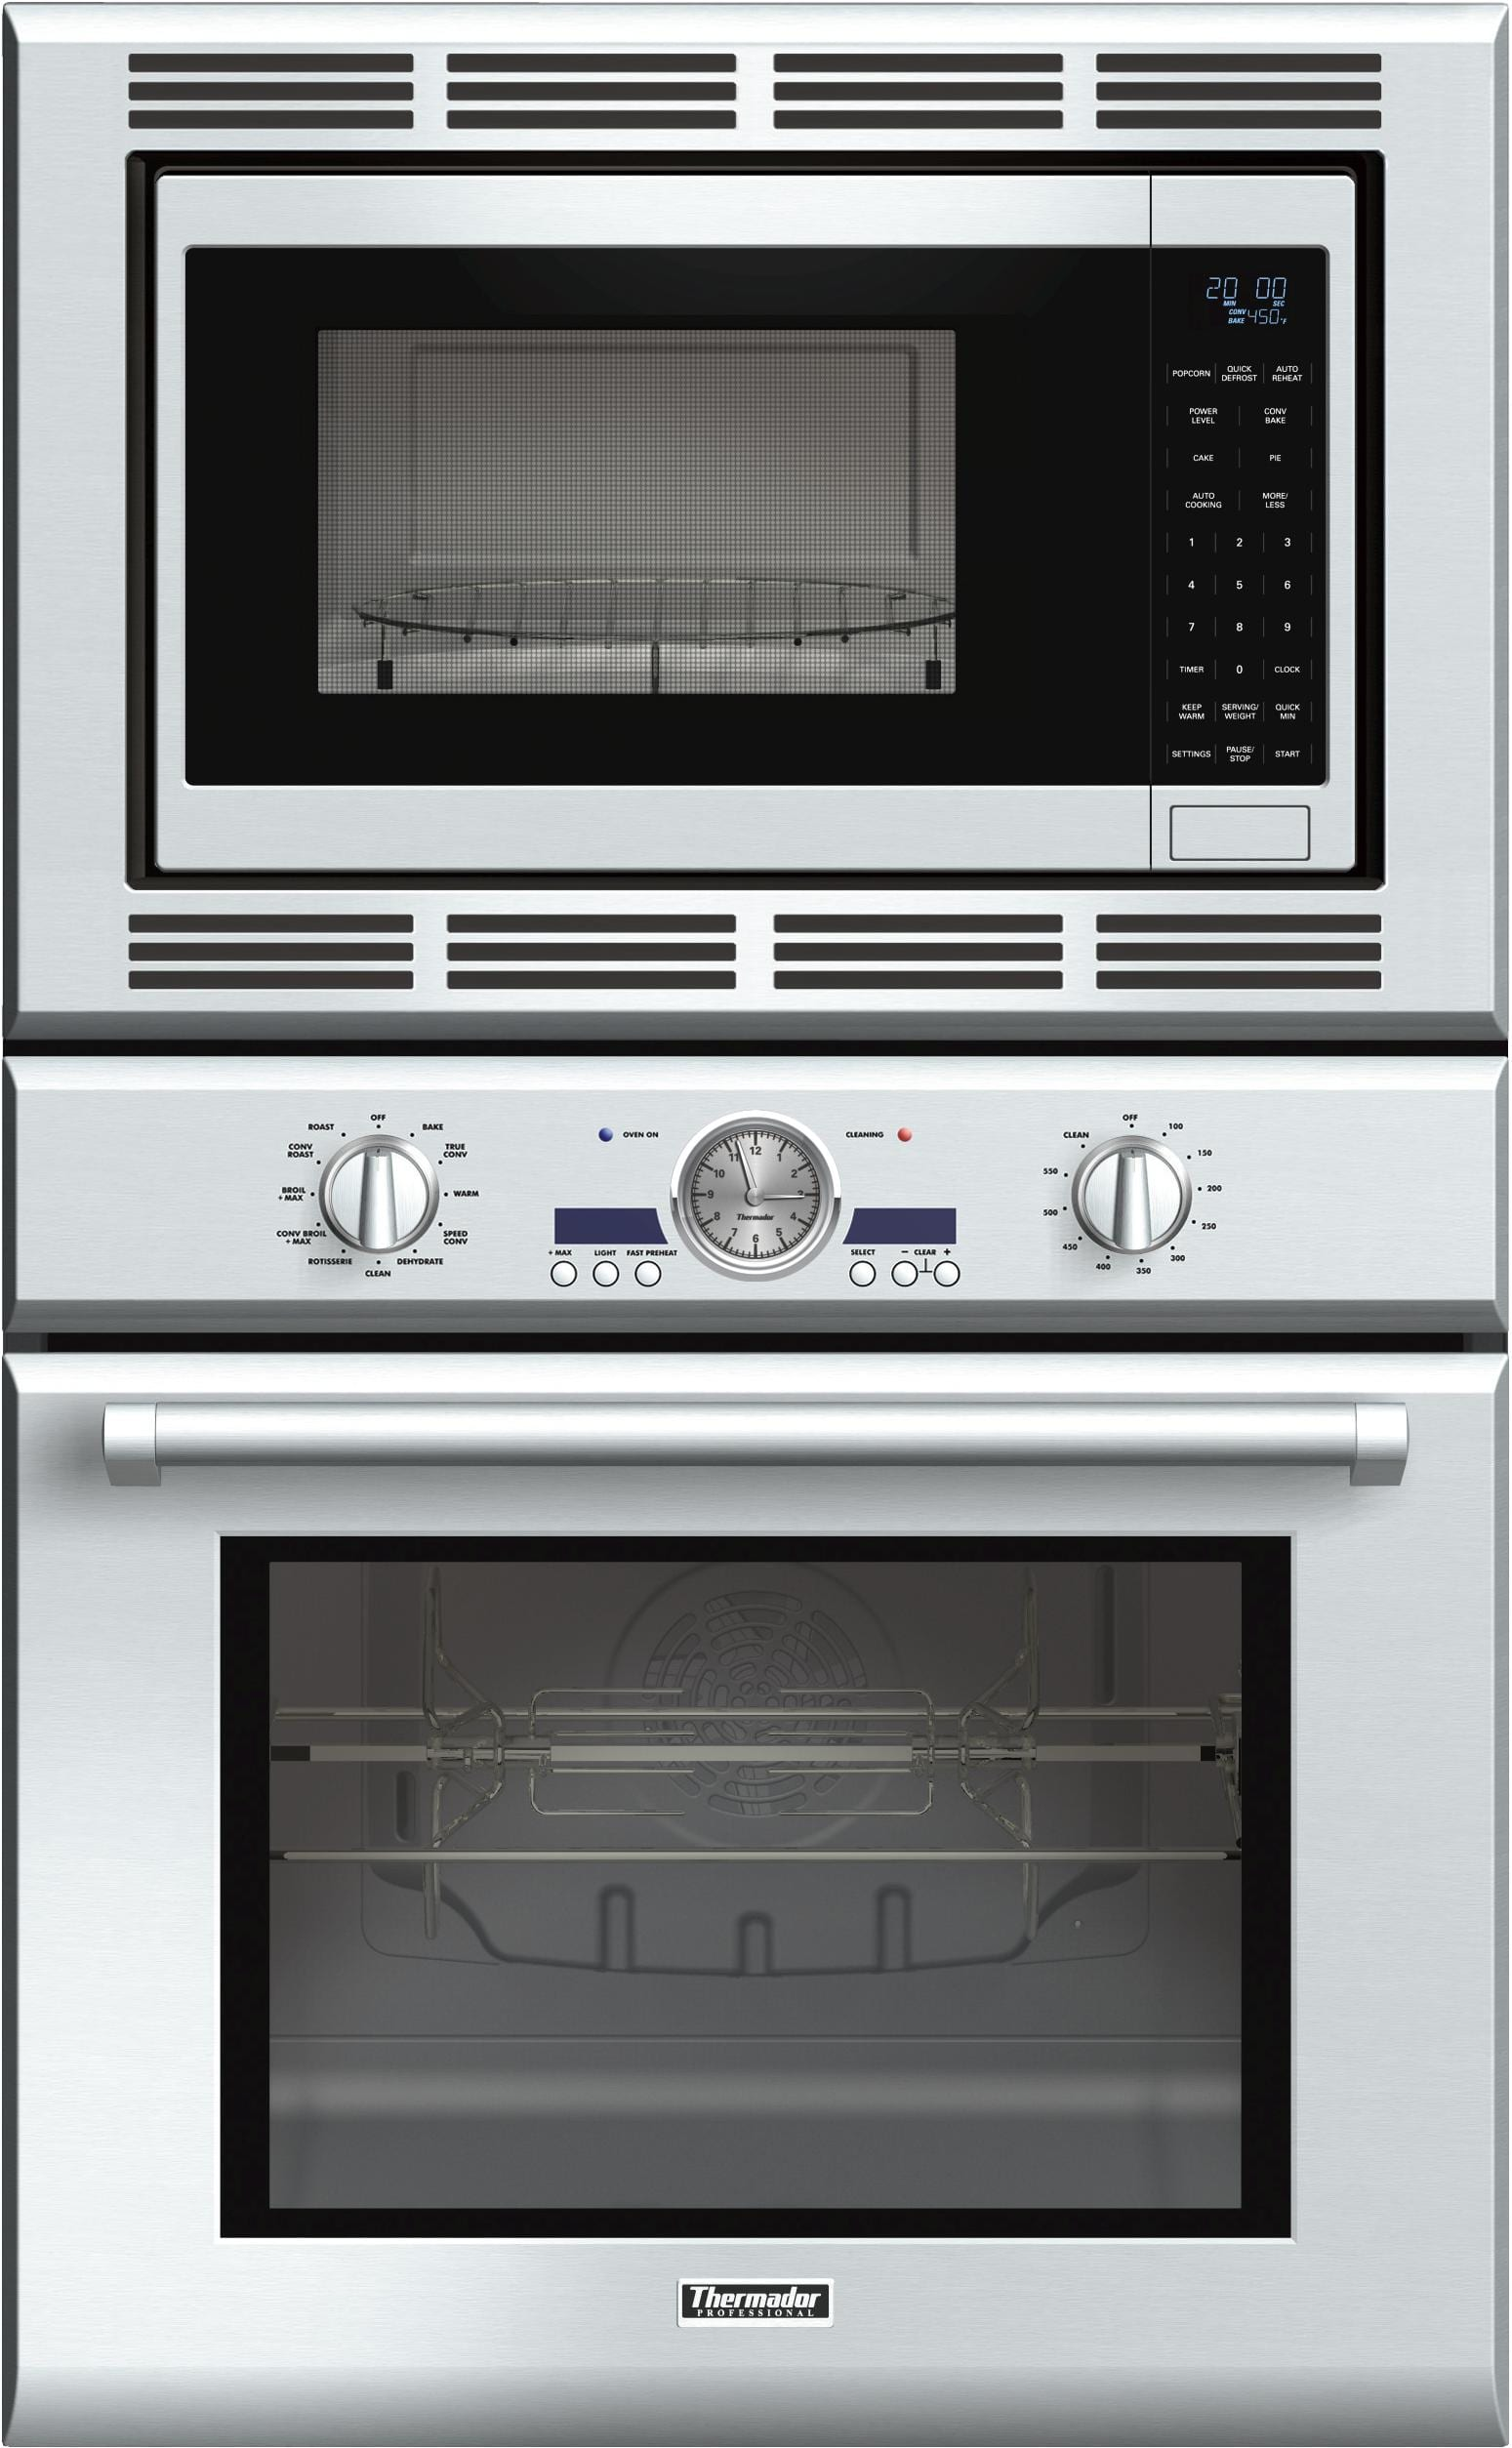 Thermador 30 Professional Series Combination Oven And Convection Microwave Podm301j